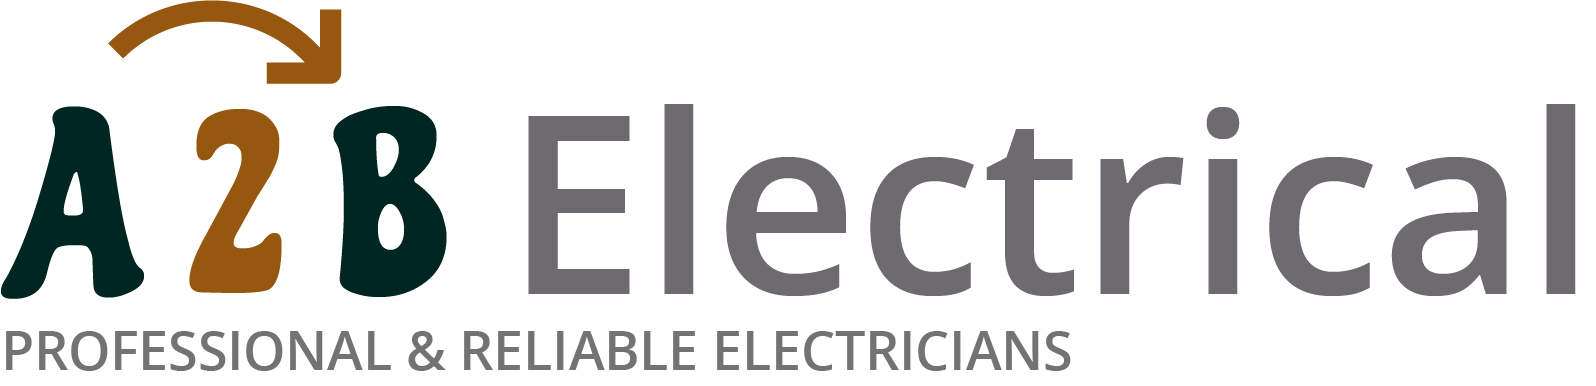 If you have electrical wiring problems in South Norwood, we can provide an electrician to have a look for you.